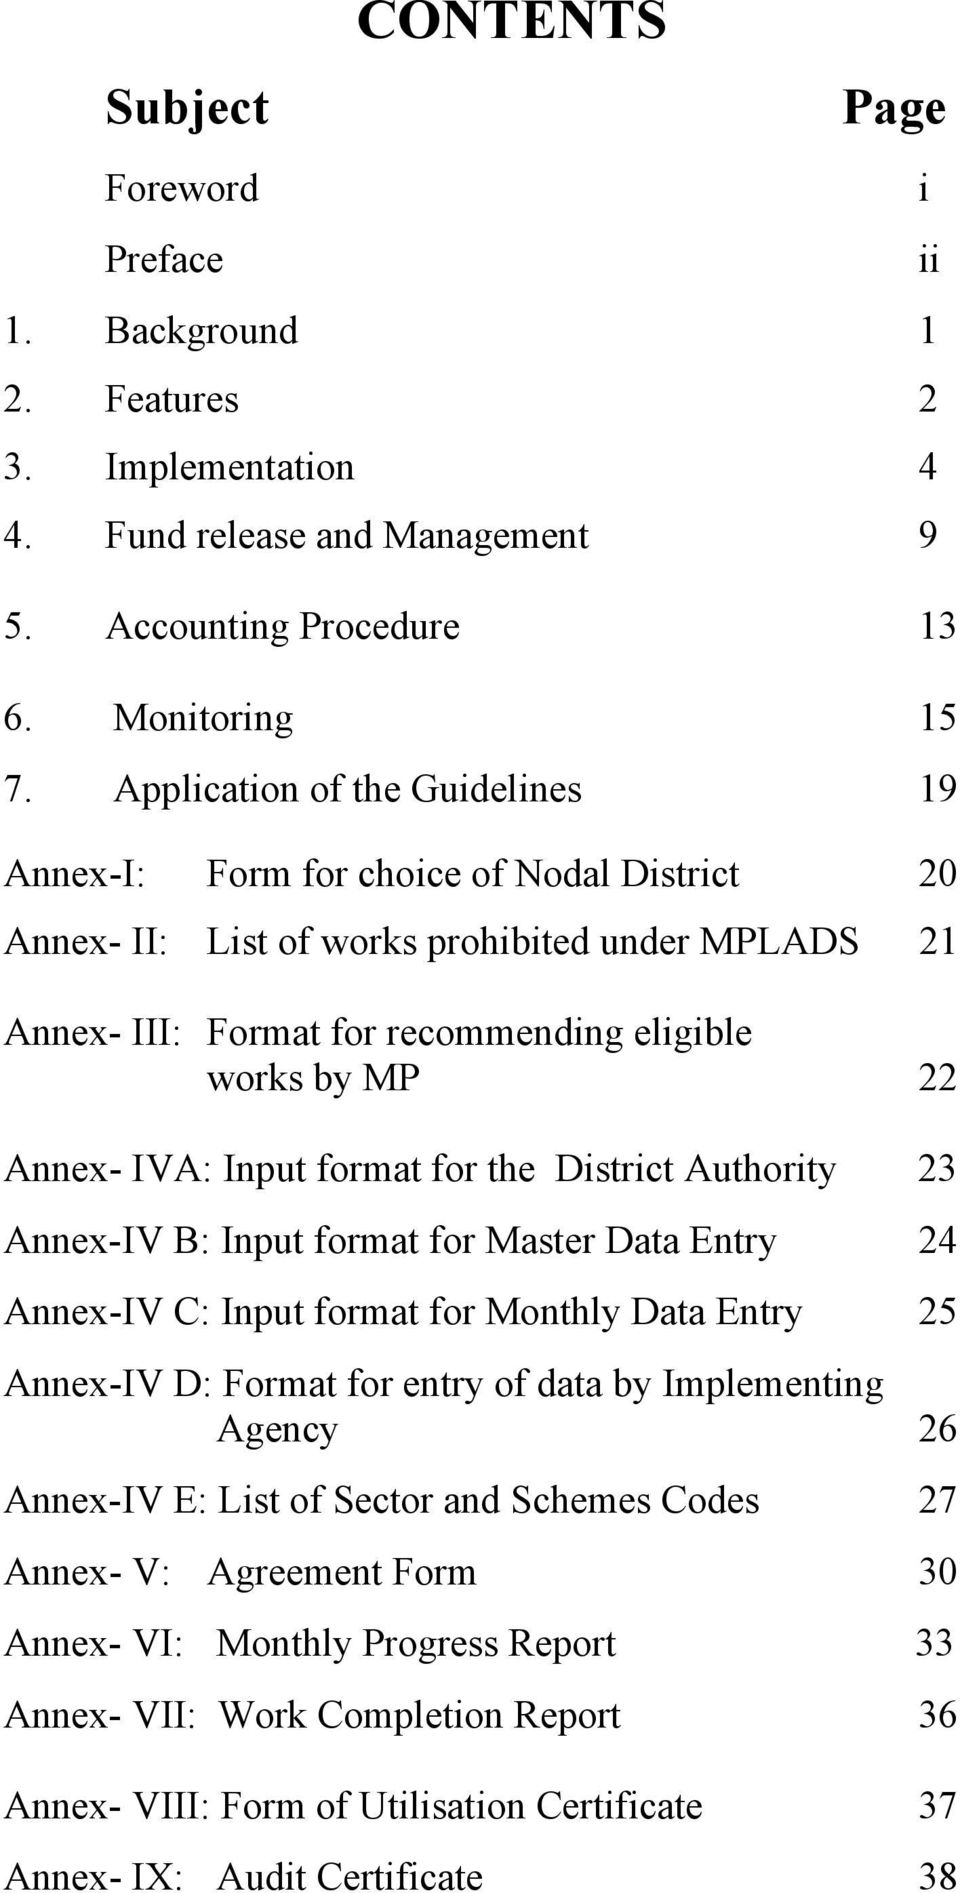 IVA: Input format for the District Authority 23 Annex-IV B: Input format for Master Data Entry 24 Annex-IV C: Input format for Monthly Data Entry 25 Annex-IV D: Format for entry of data by